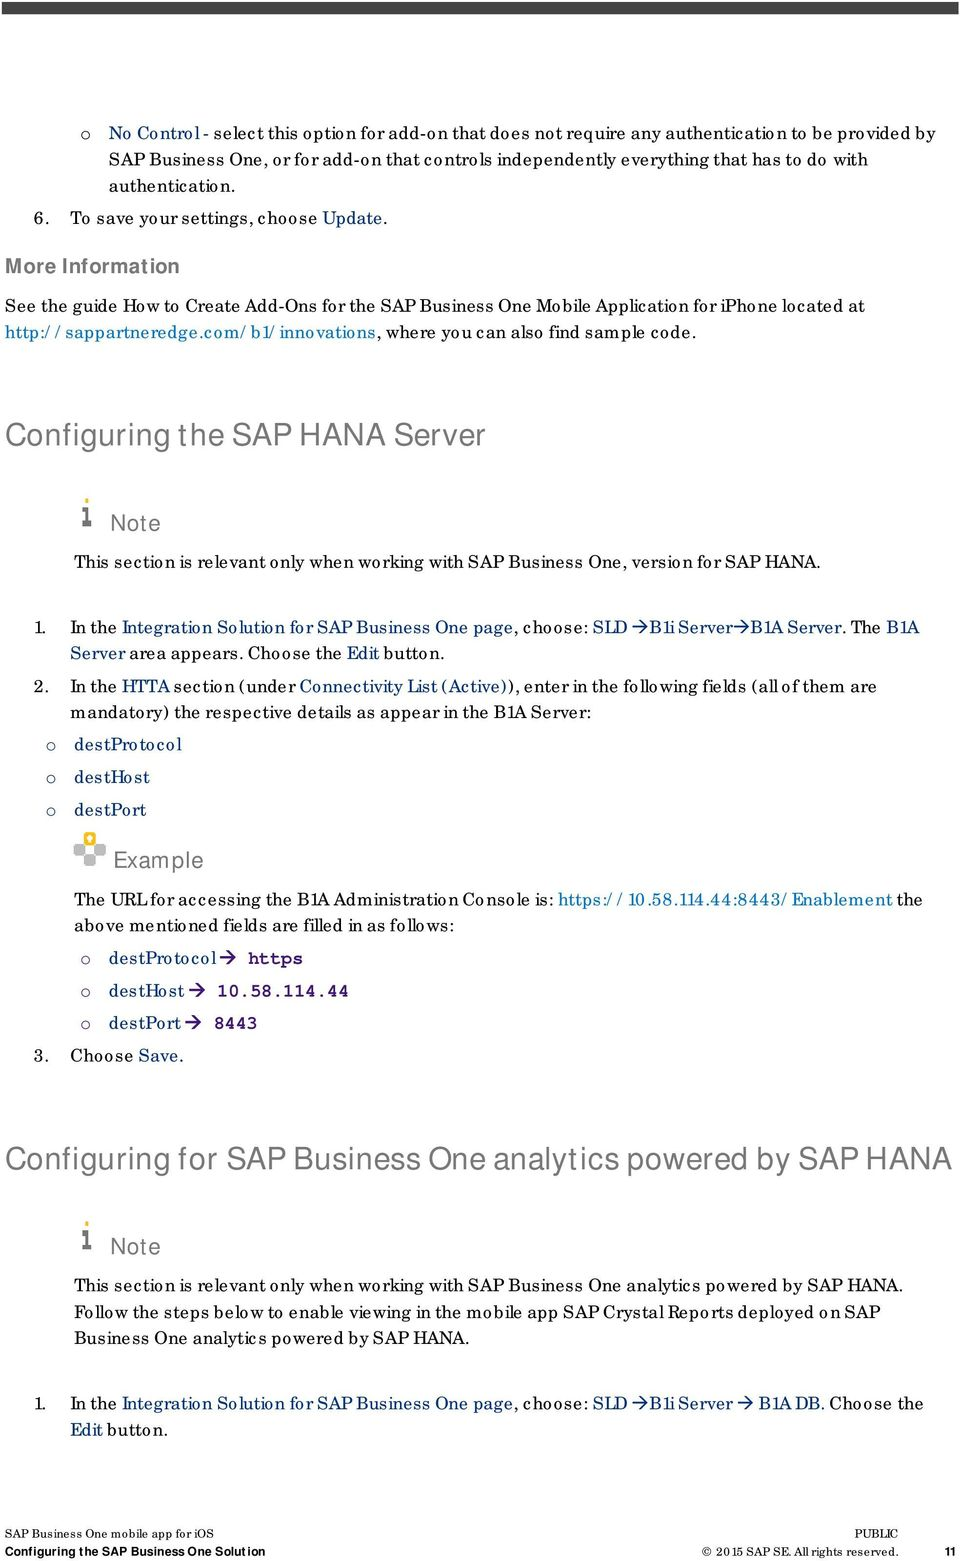 com/b1/innovations, where you can also find sample code. Configuring the SAP HANA Server This section is relevant only when working with SAP Business One, version for SAP HANA. 1.